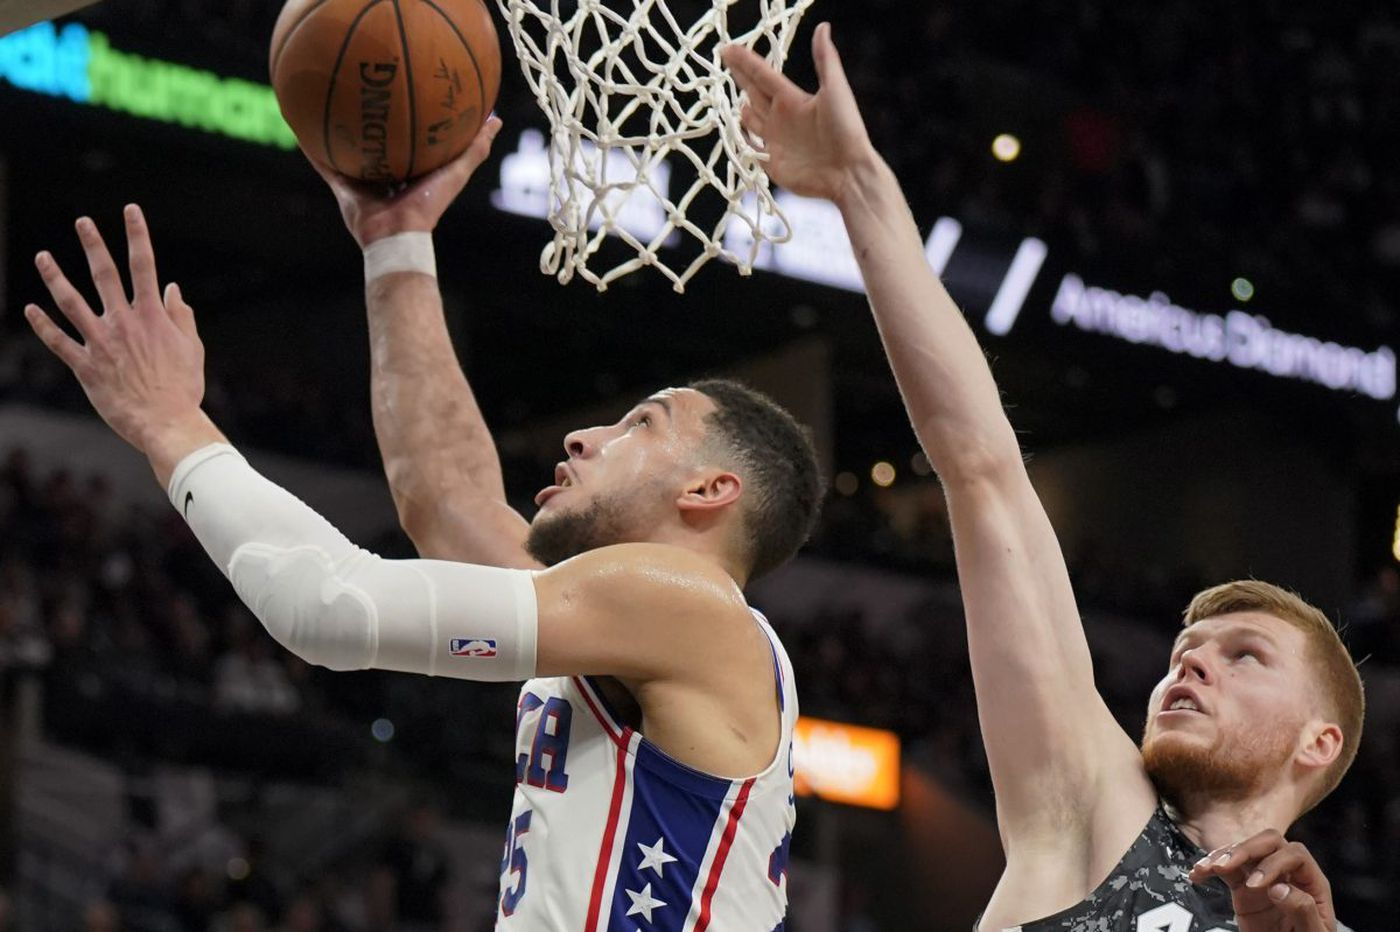 Sixers 97, Spurs 78: Ben Simmons nearly perfect in defensive clinic, and other quick observations